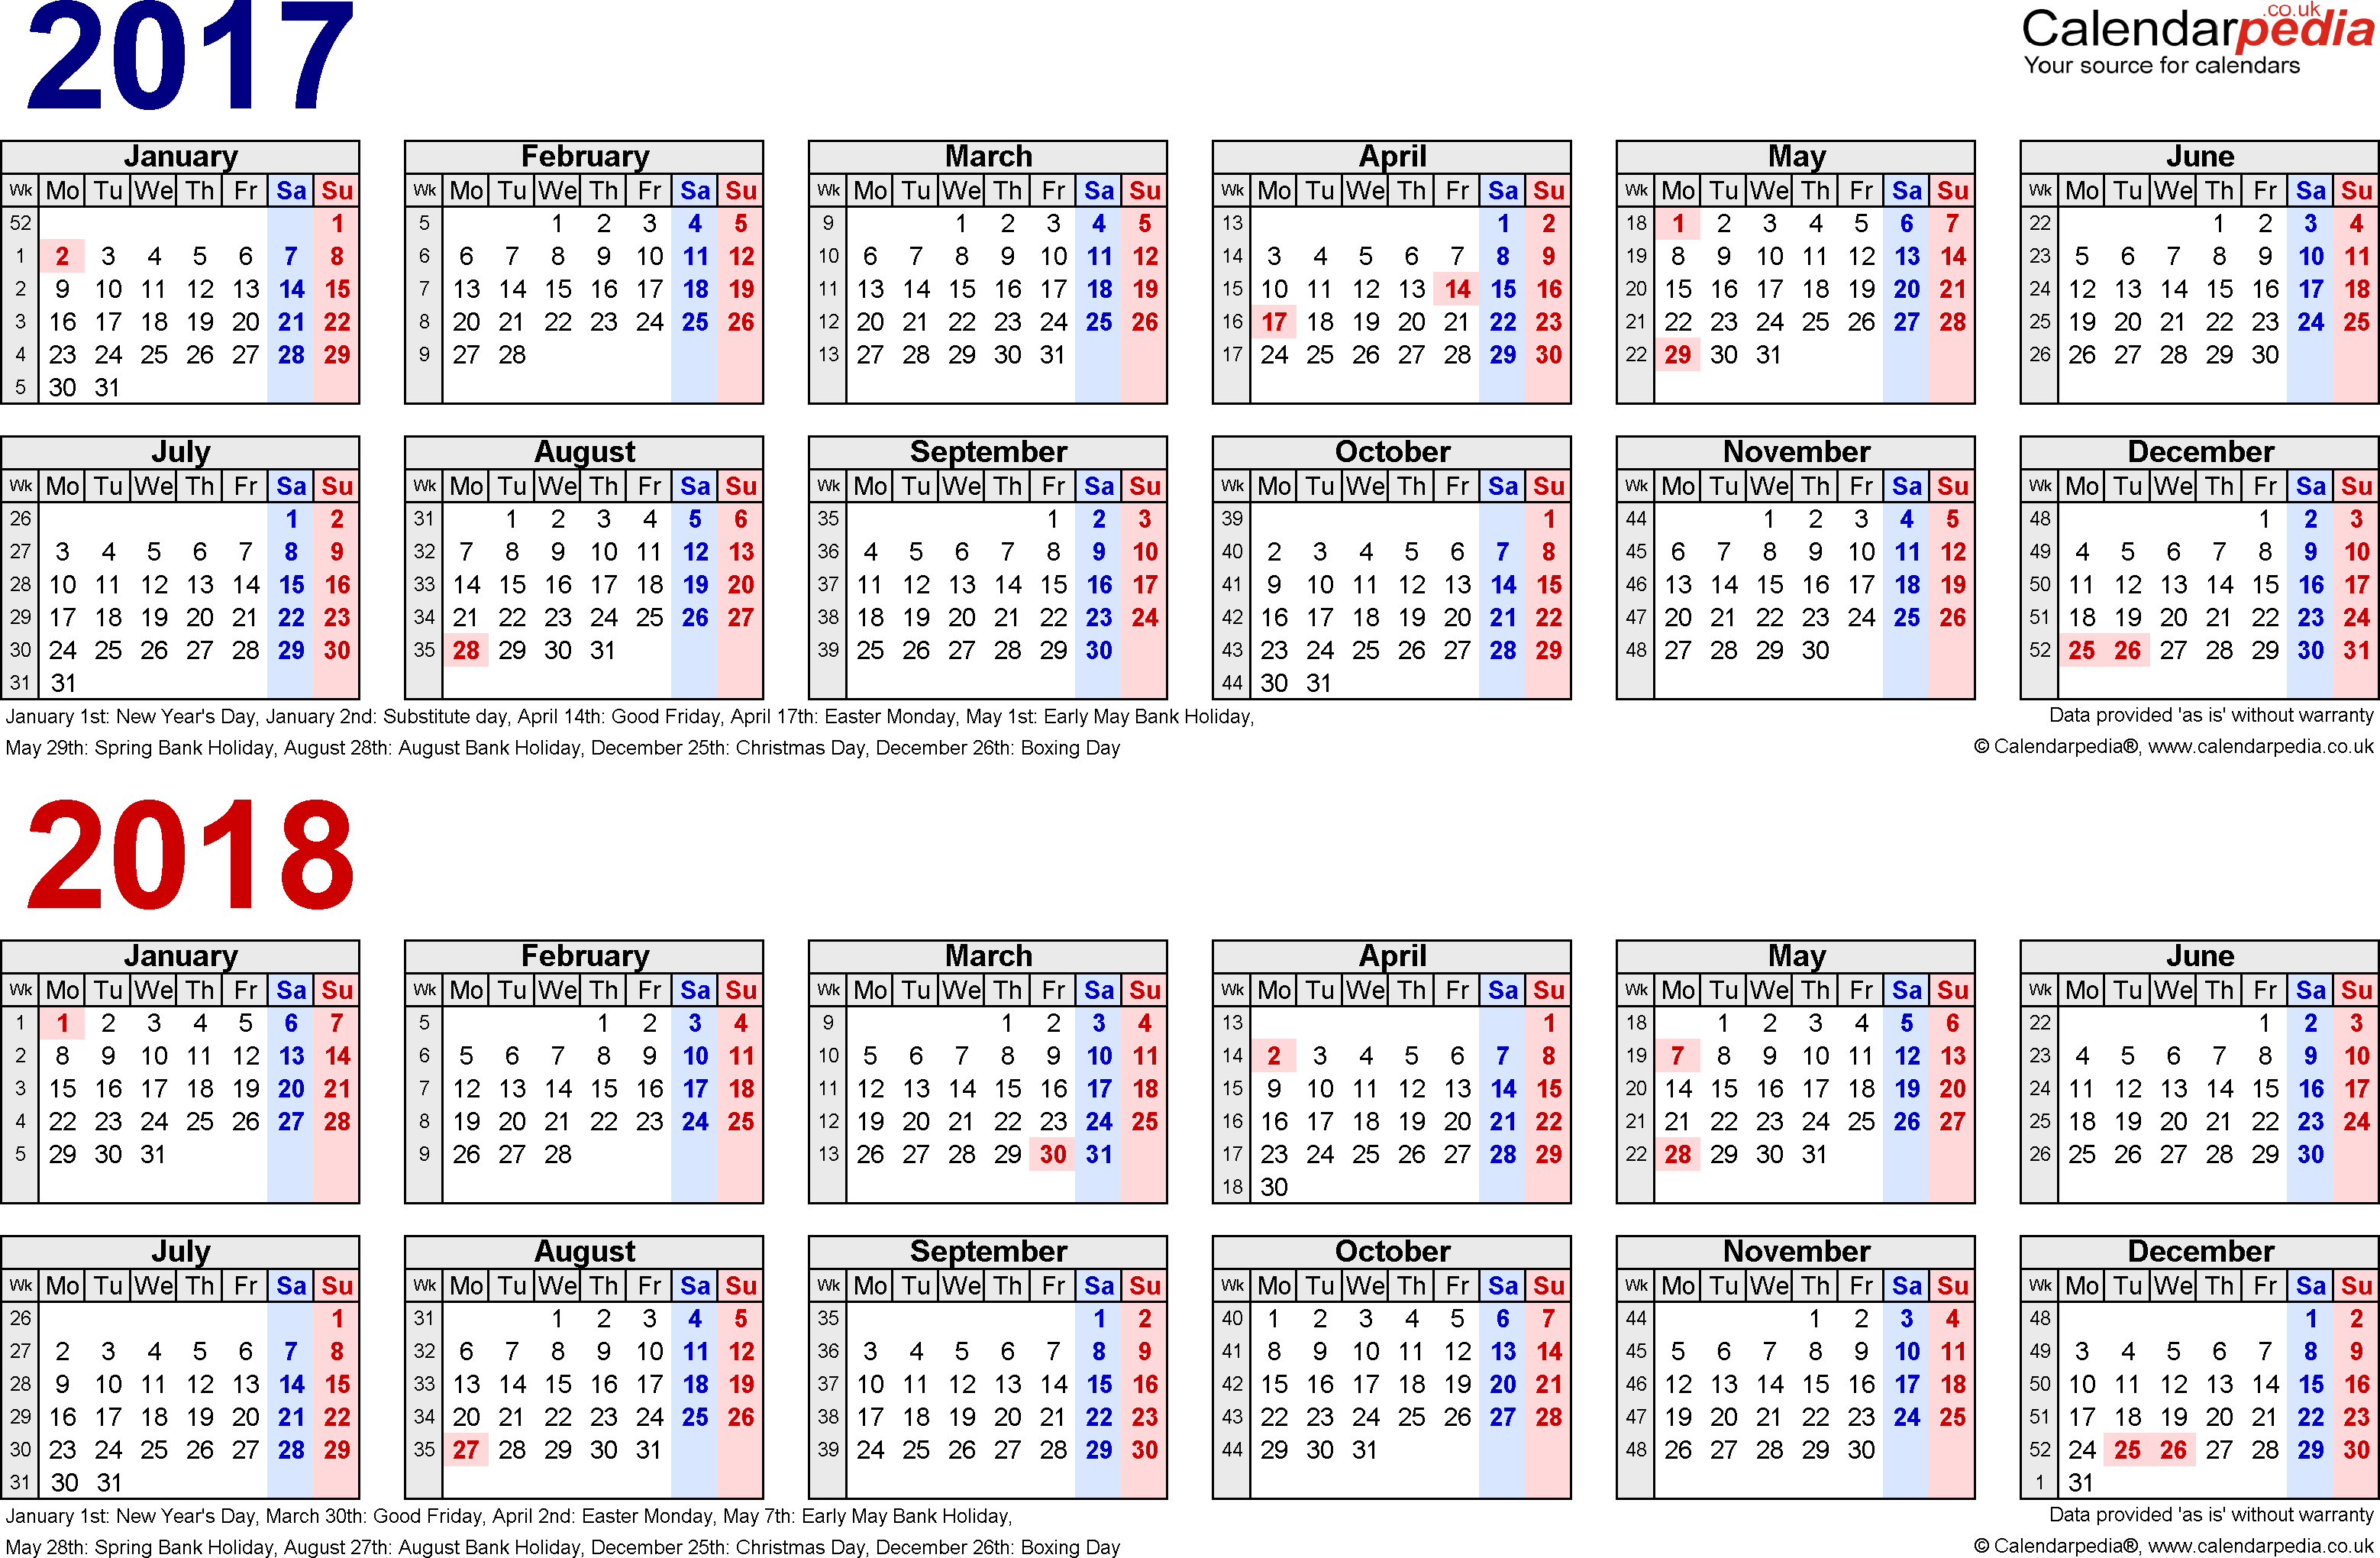 Download Template 1: PDF template for two year calendar 2017/2018 in blue/red (landscape orientation, 1 page, A4)